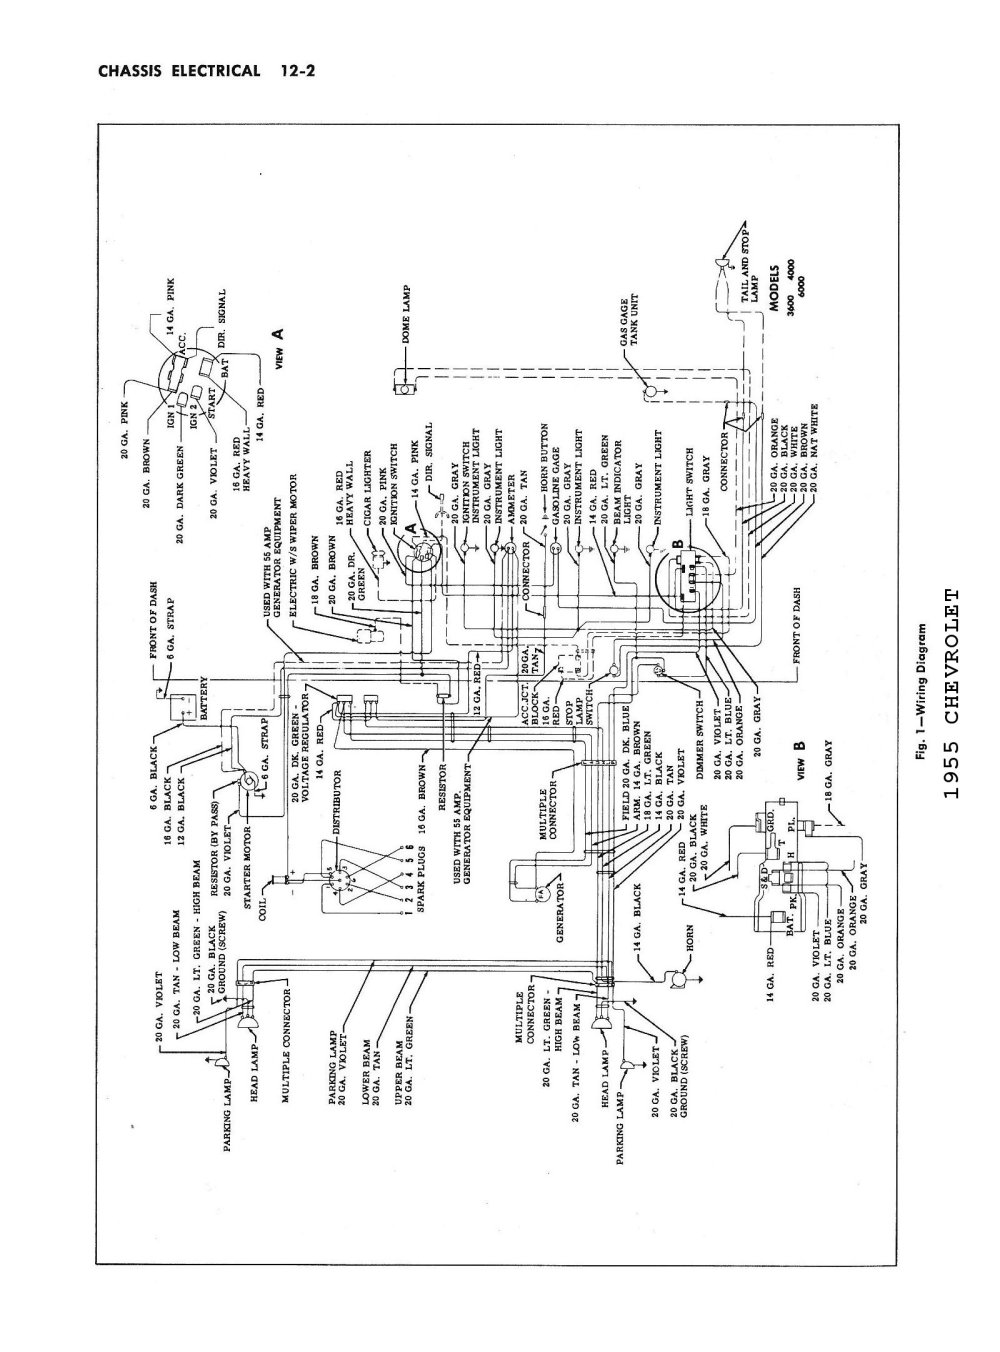 medium resolution of 55 chevy belair wiring diagram free picture wiring diagram source 1985 chevy truck wiring diagram 56 chevy belair wiring diagram